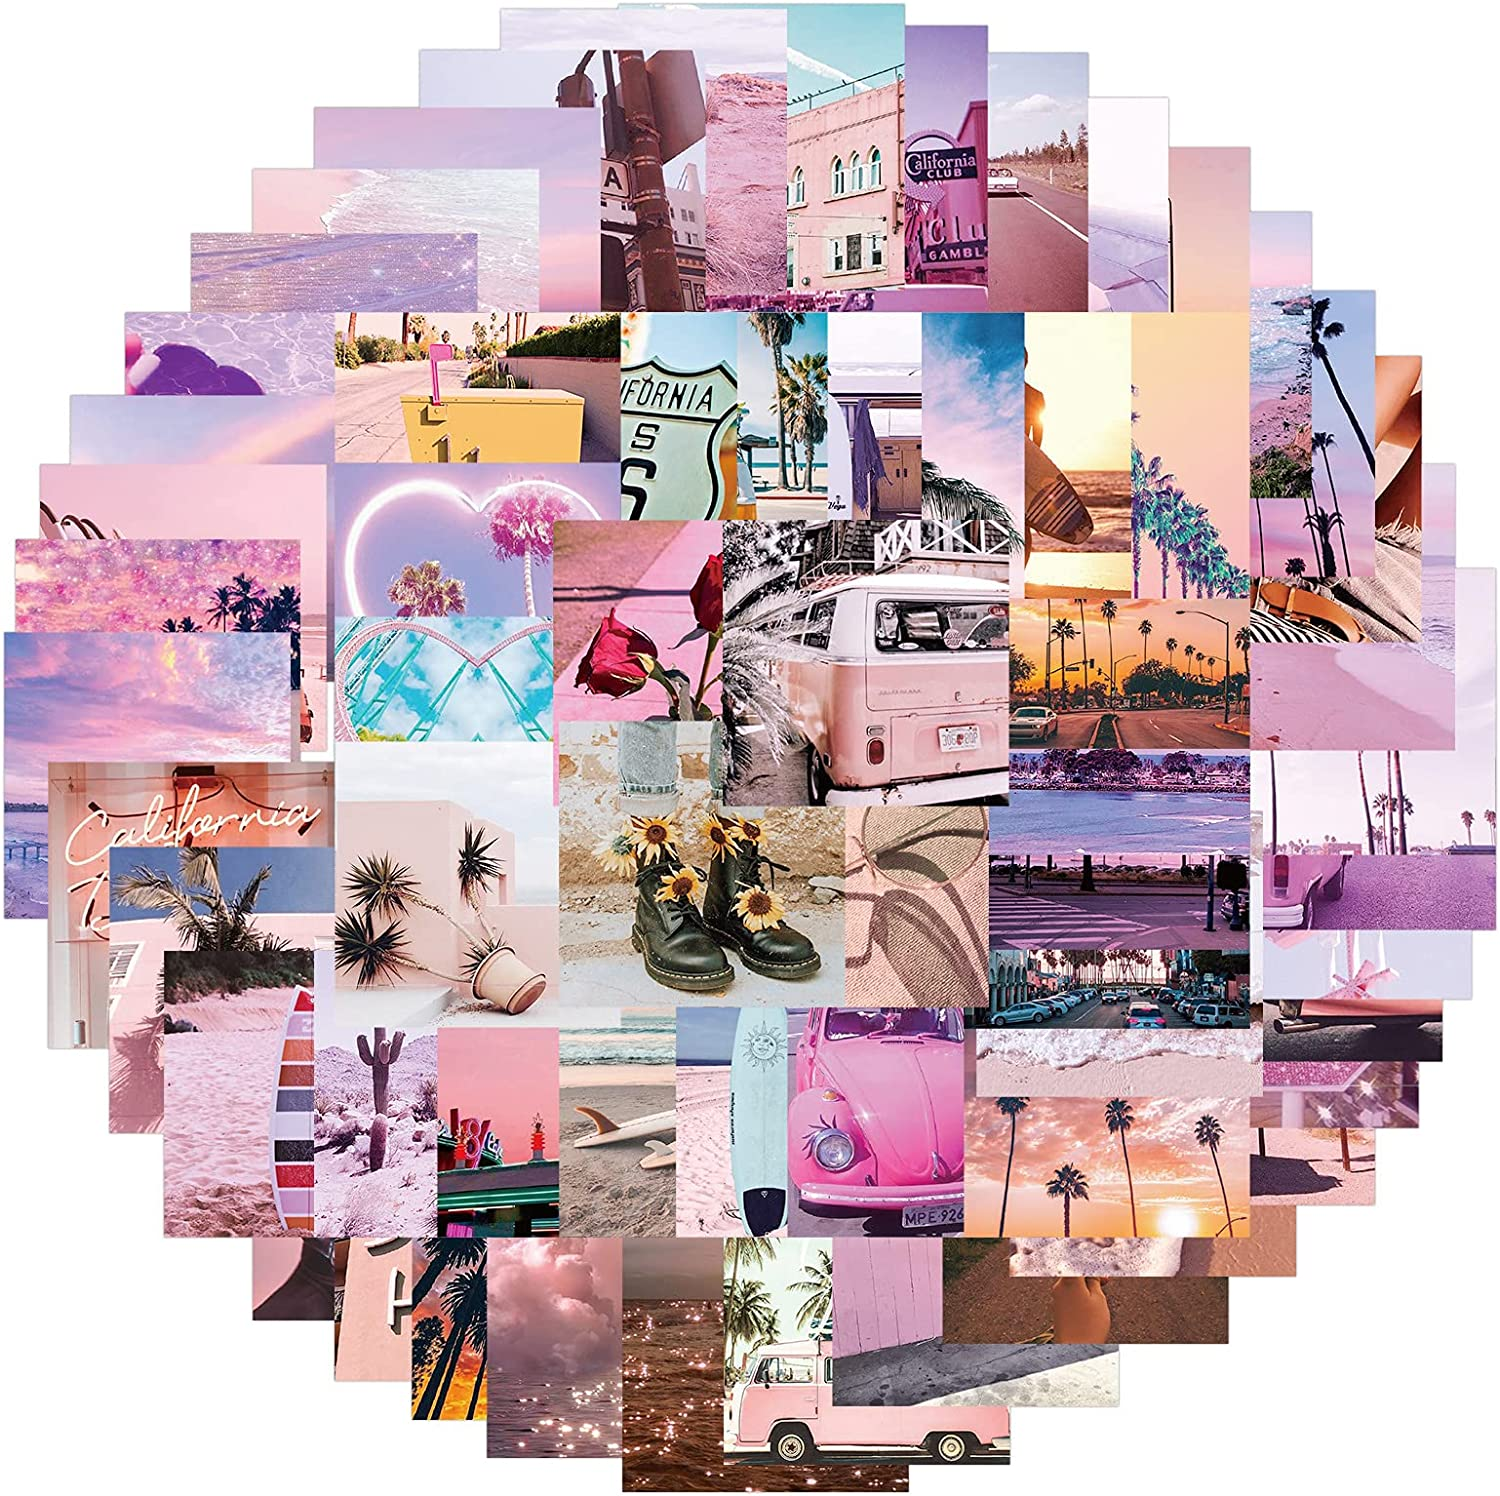 California Sunny Landscape Stickers 62pcs Waterproof Cute Fashion Stickers,Very Suitable for Laptops,Suitcases,Cars,Phones,Skateboards,Scrapbooks,Bikes,Cups,Bumpers,Motorcycles,Guitars and Snowboards.